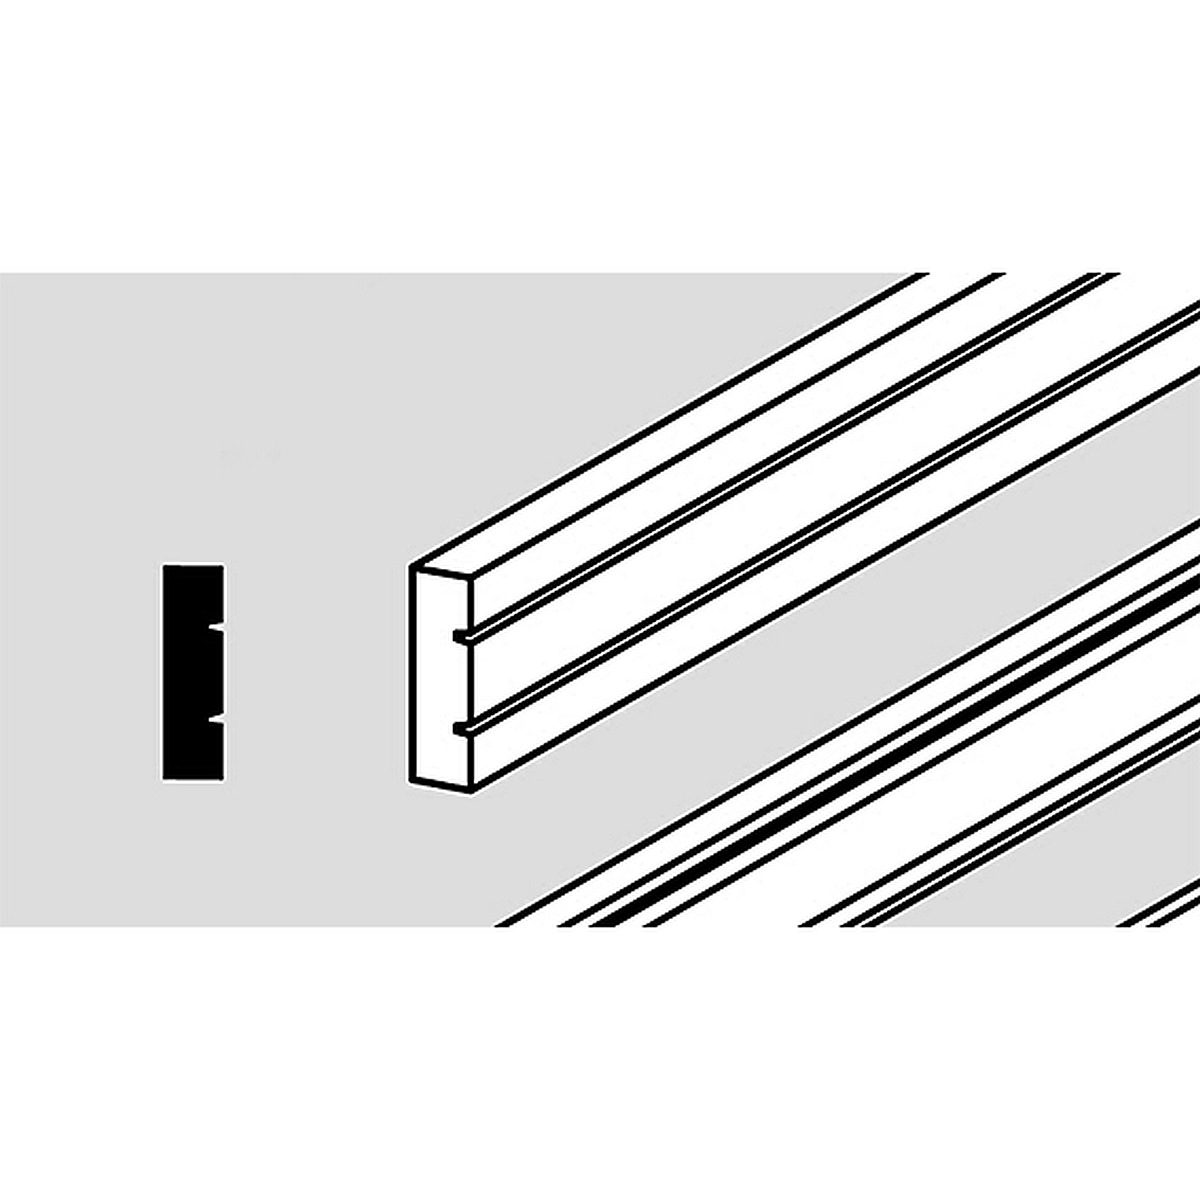 Cover strips for edge cladding, white, 12 pieces